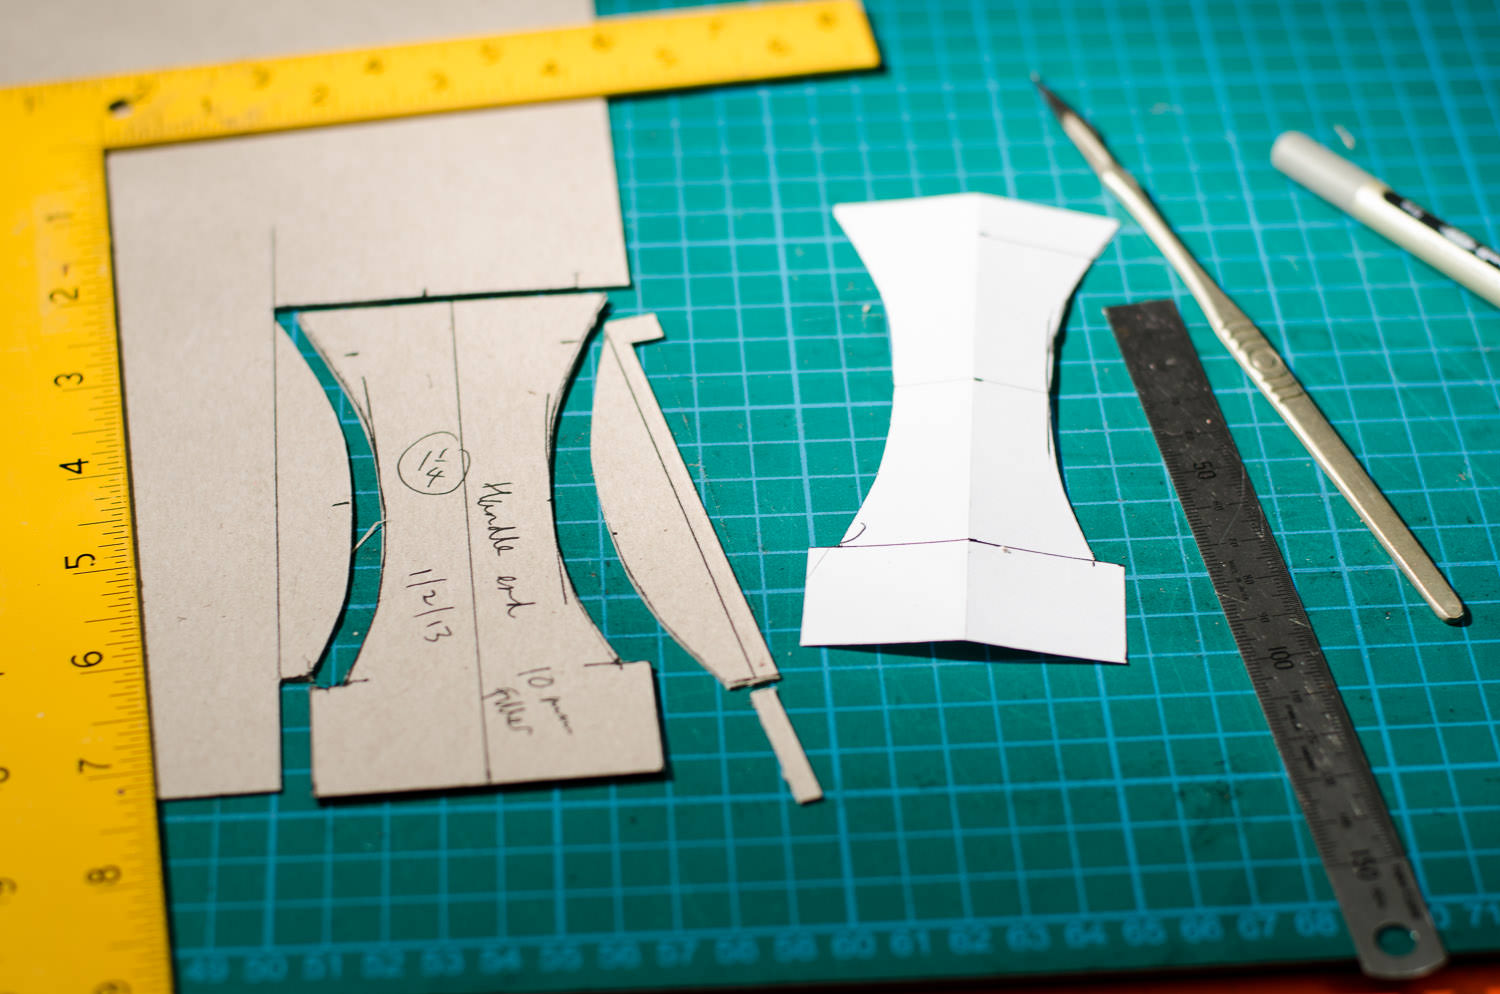 Cutting patterns